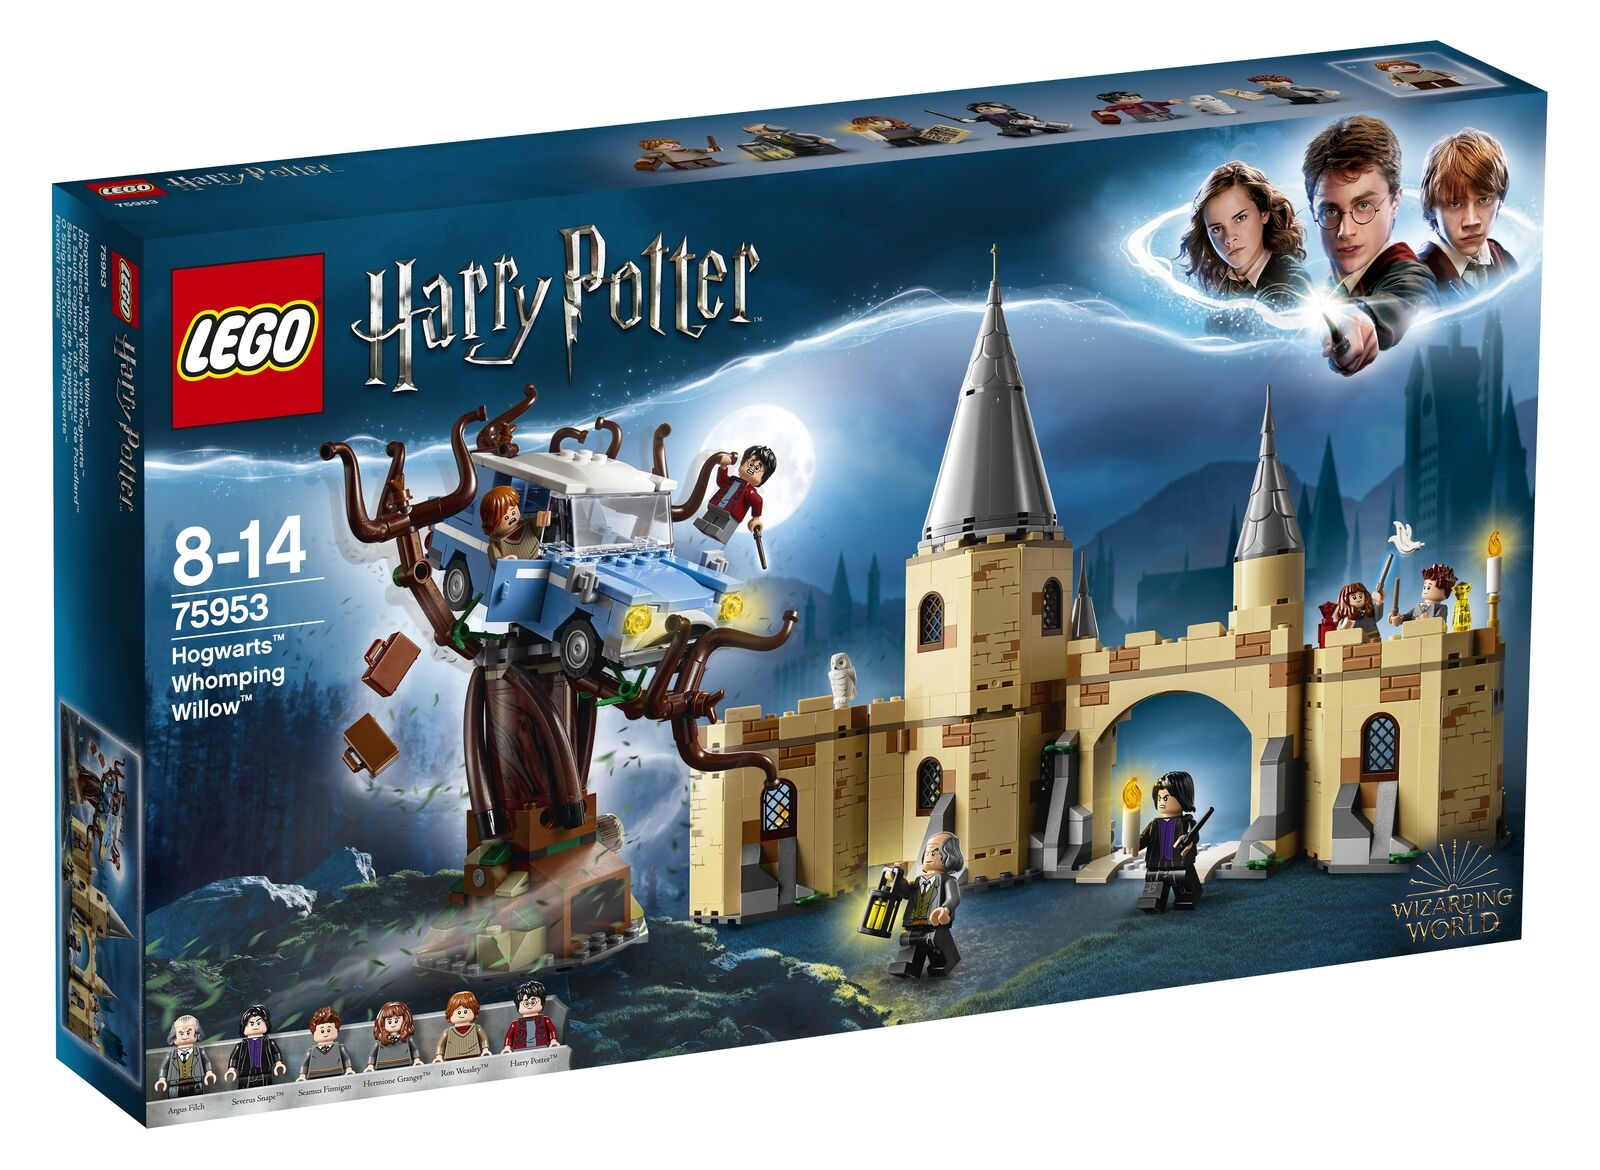 Lego Harry Potter Hogwarts Whomping Willow (75953) Brand New